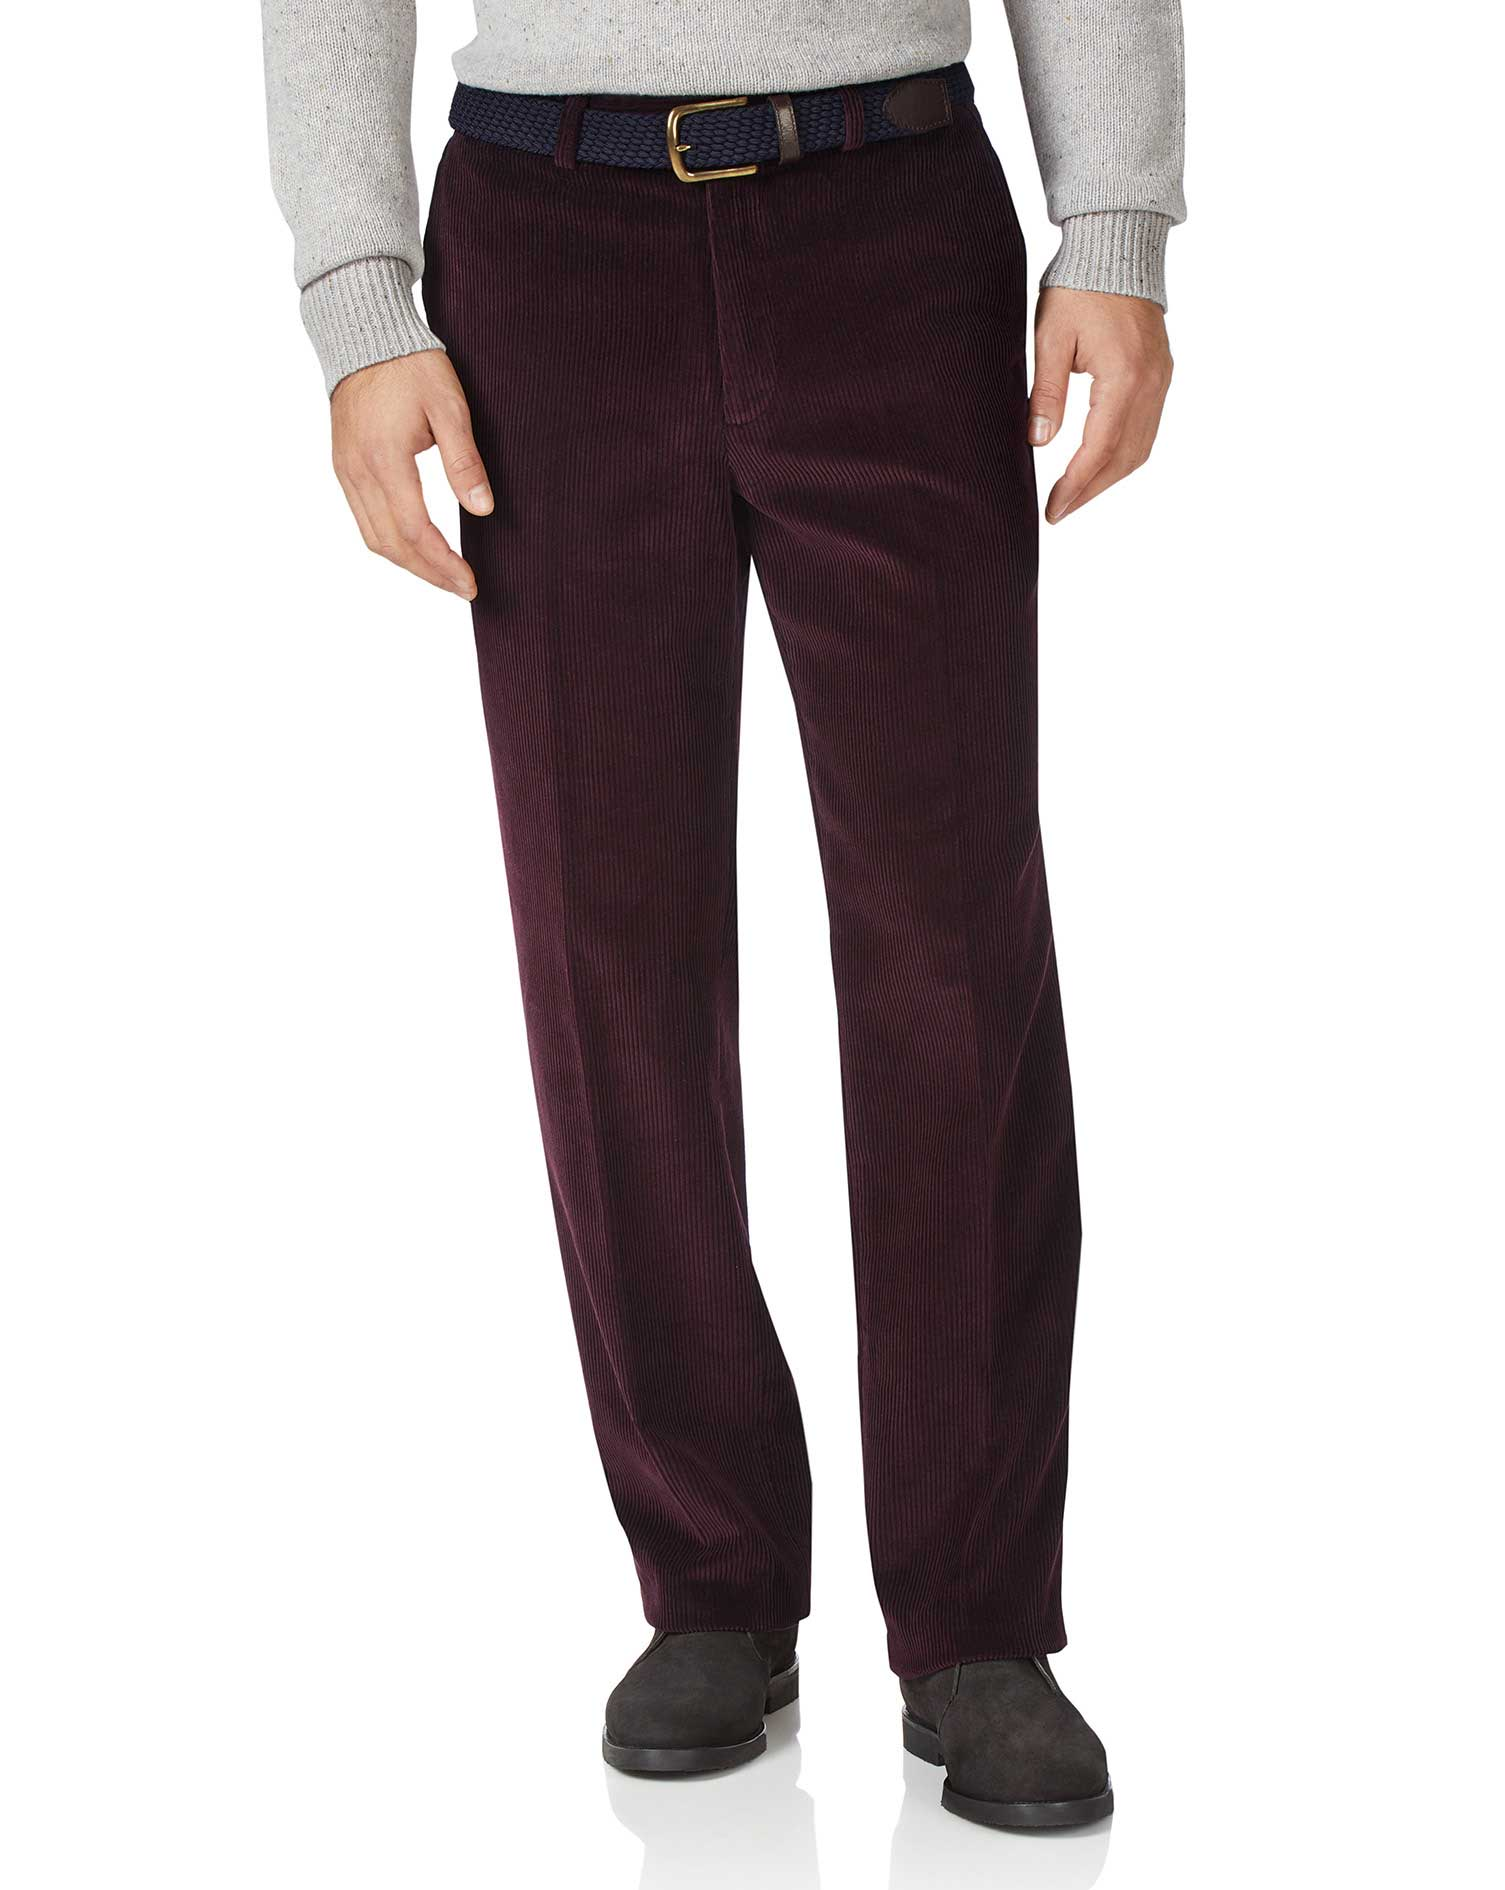 Wine Classic Fit Jumbo Corduroy Trousers Size W42 L30 by Charles Tyrwhitt